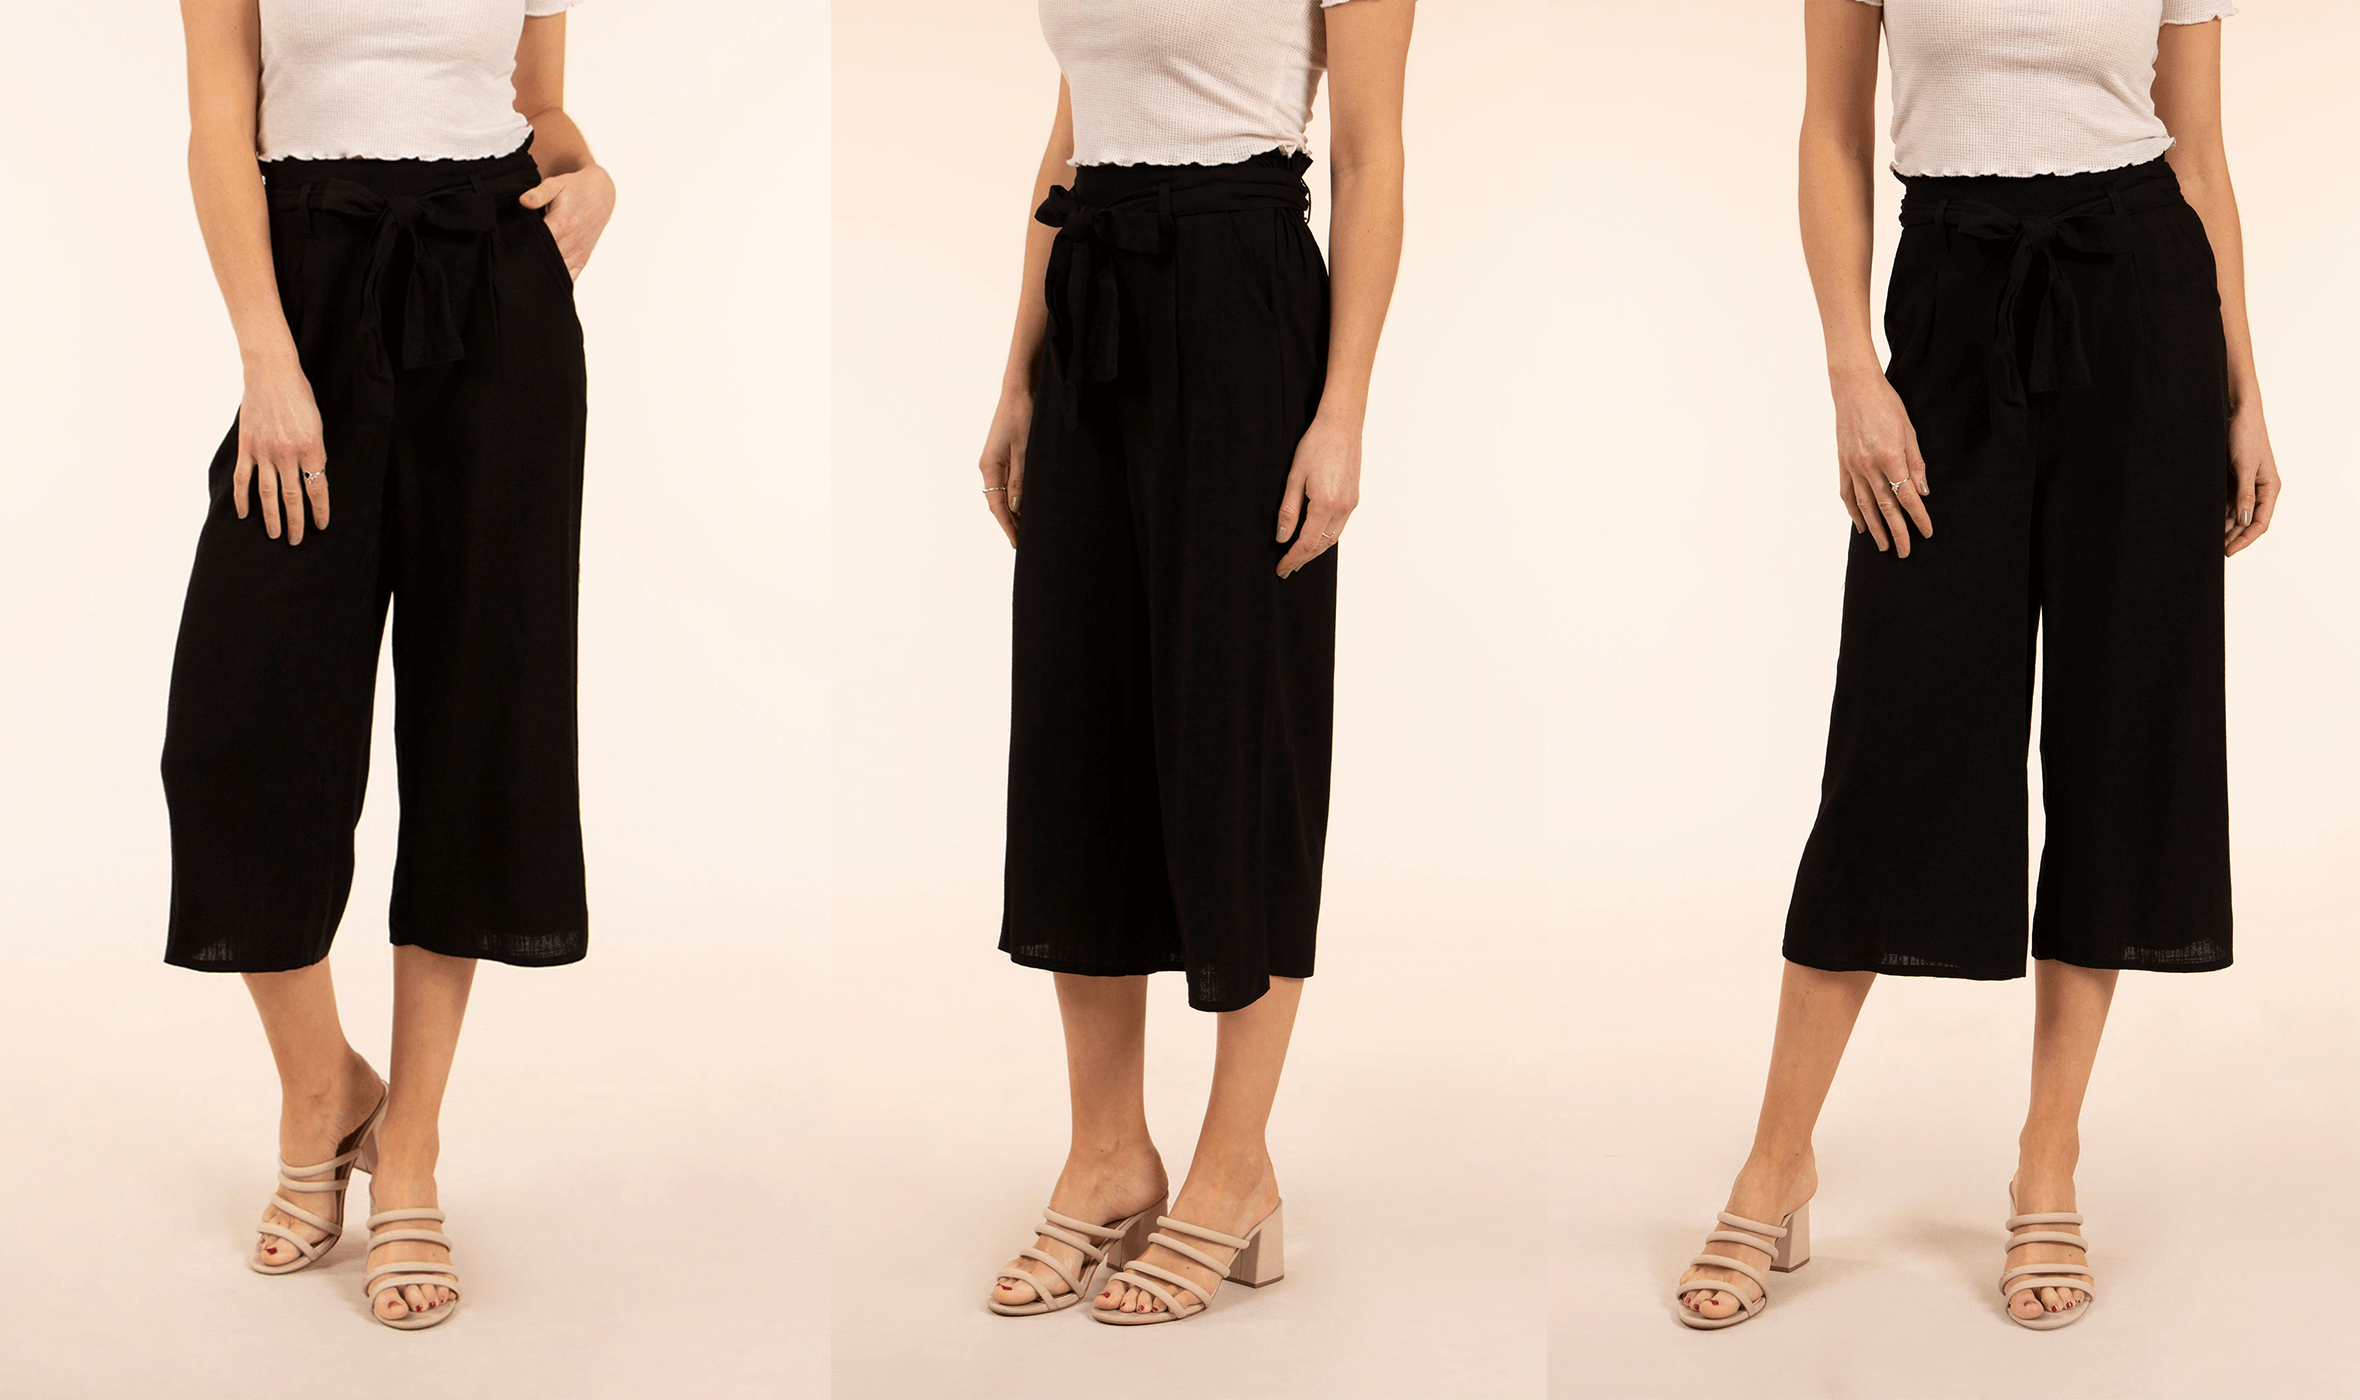 Spice Up Your Silhouette with Culottes - Basic Solid Culottes | Femme Connection